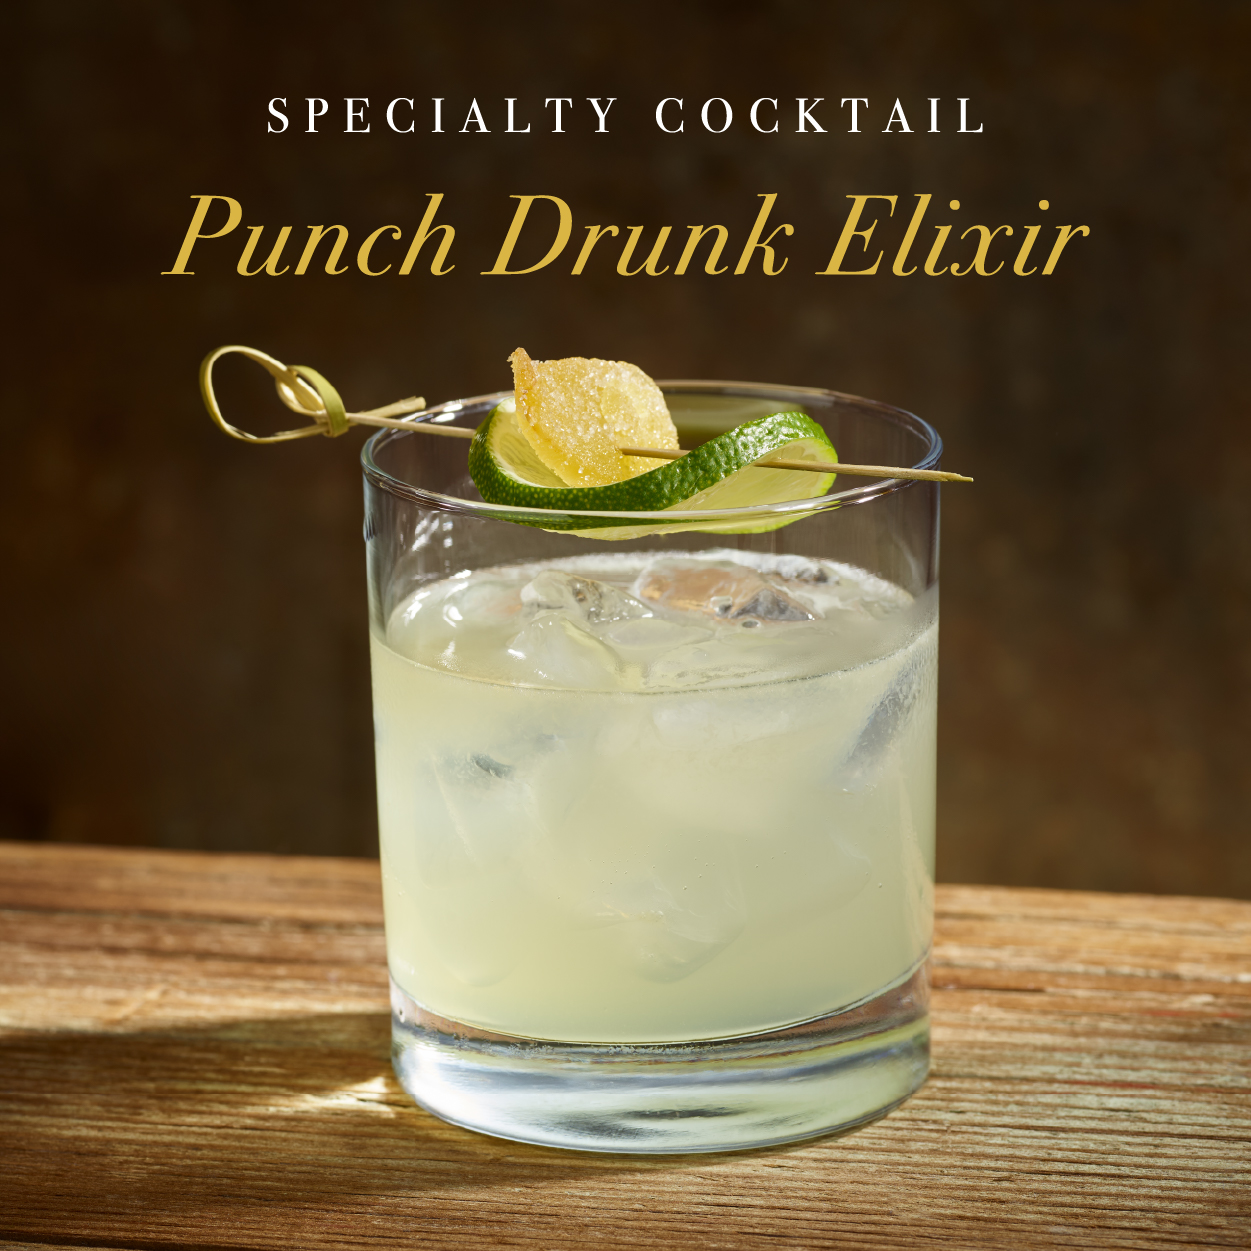 Signature Cocktail - Punch Drunk Elixir - Cult Classics